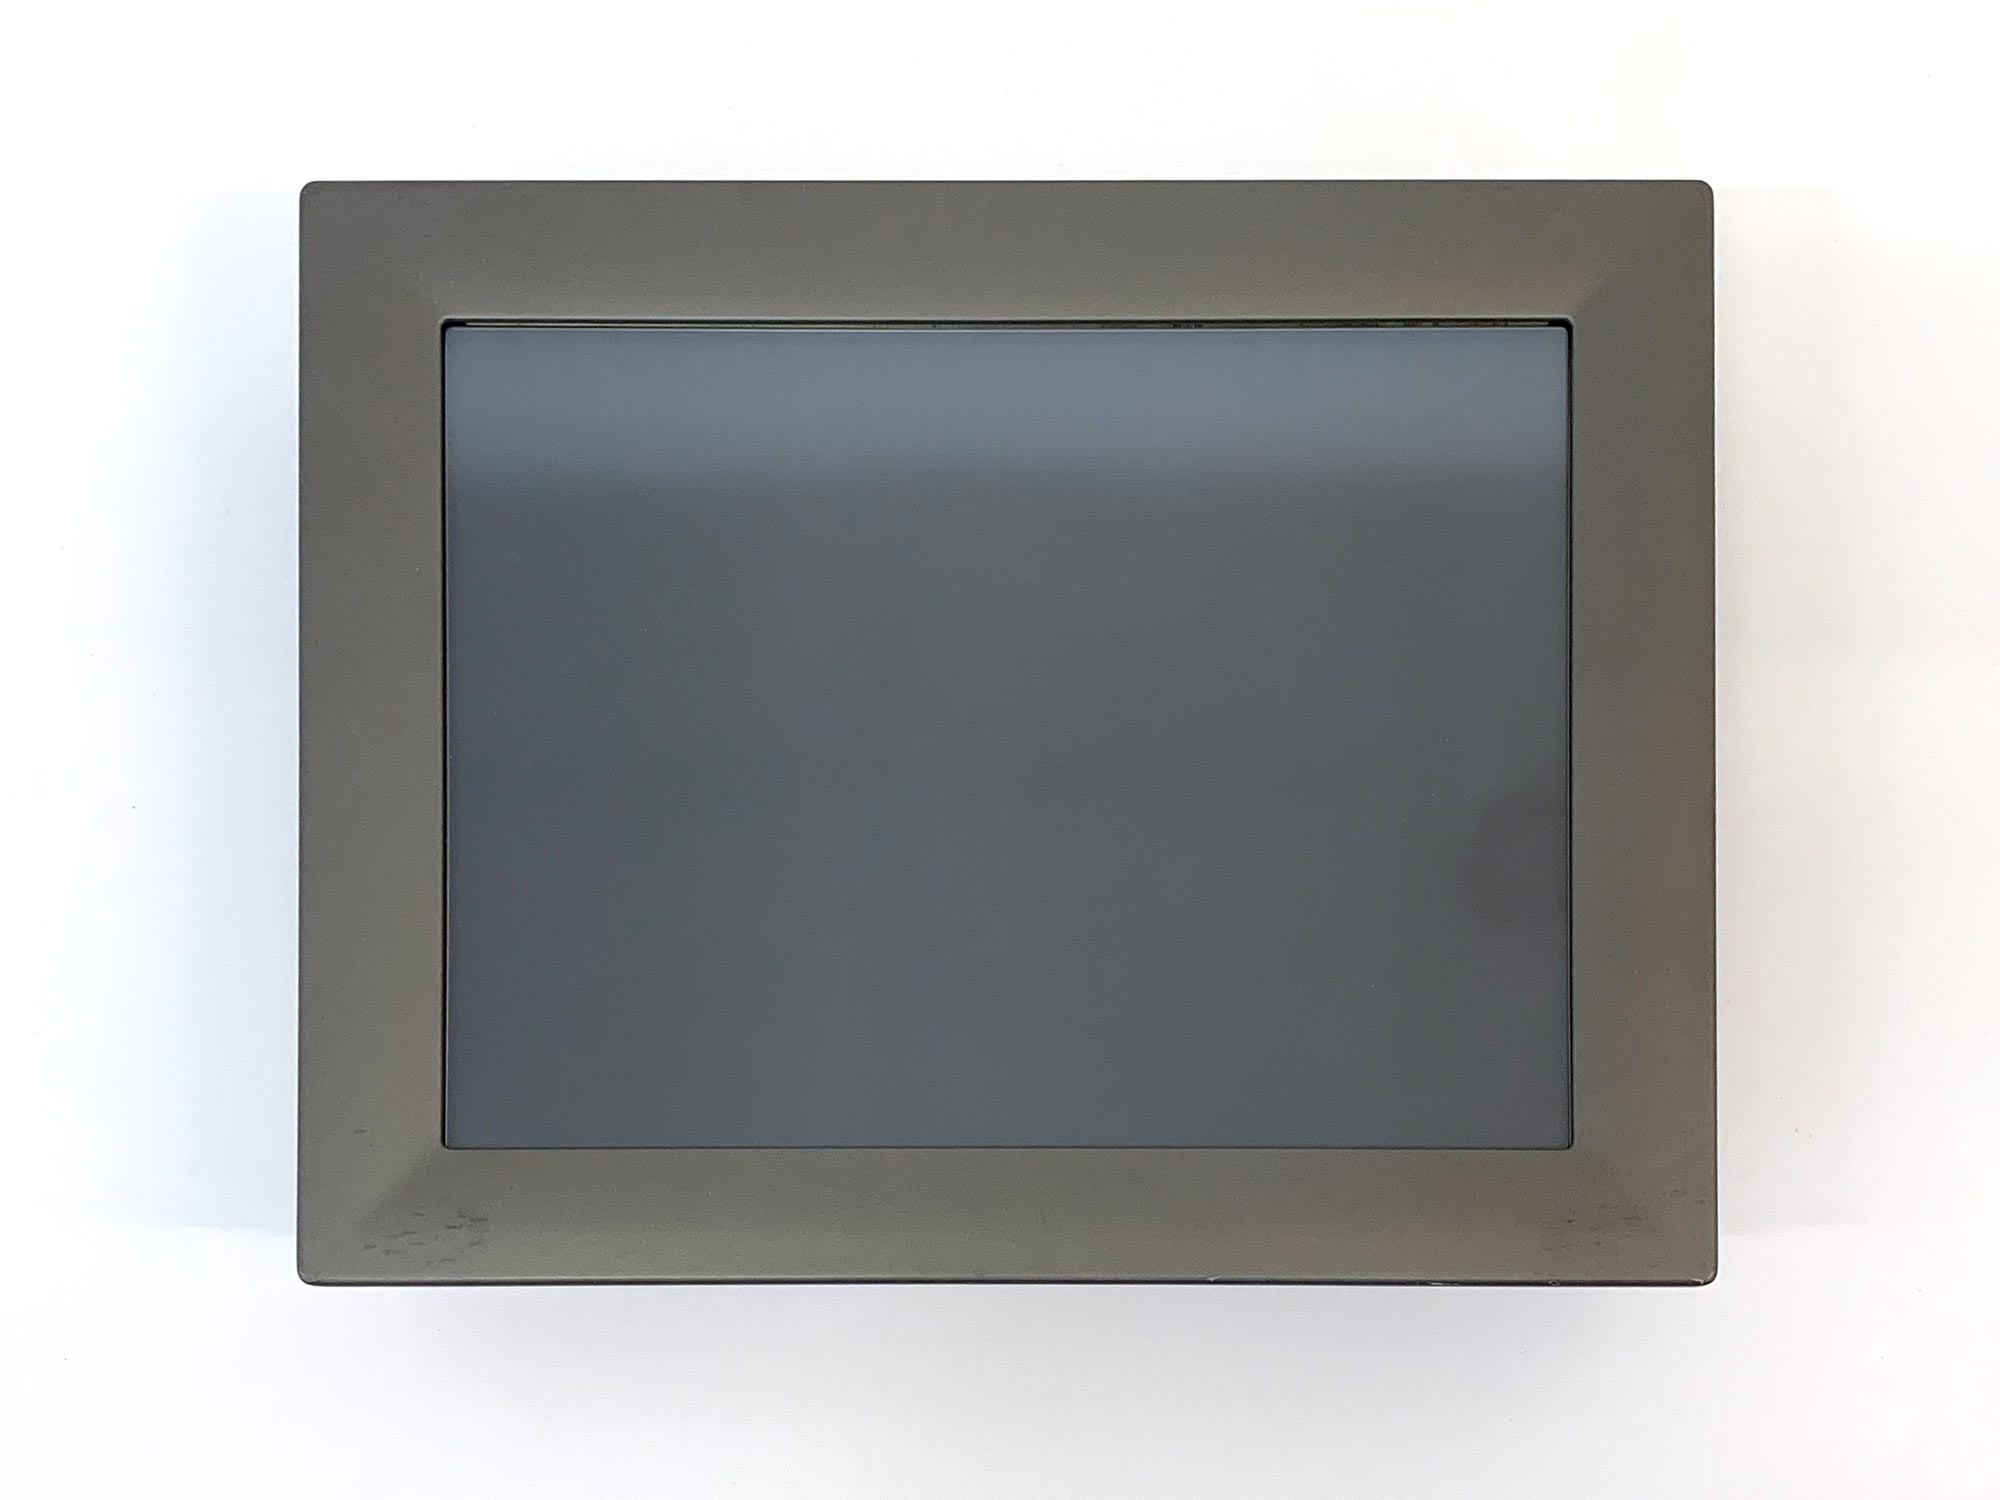 TPC-1570H - Touch-Panel PC mit 15 Zoll Display